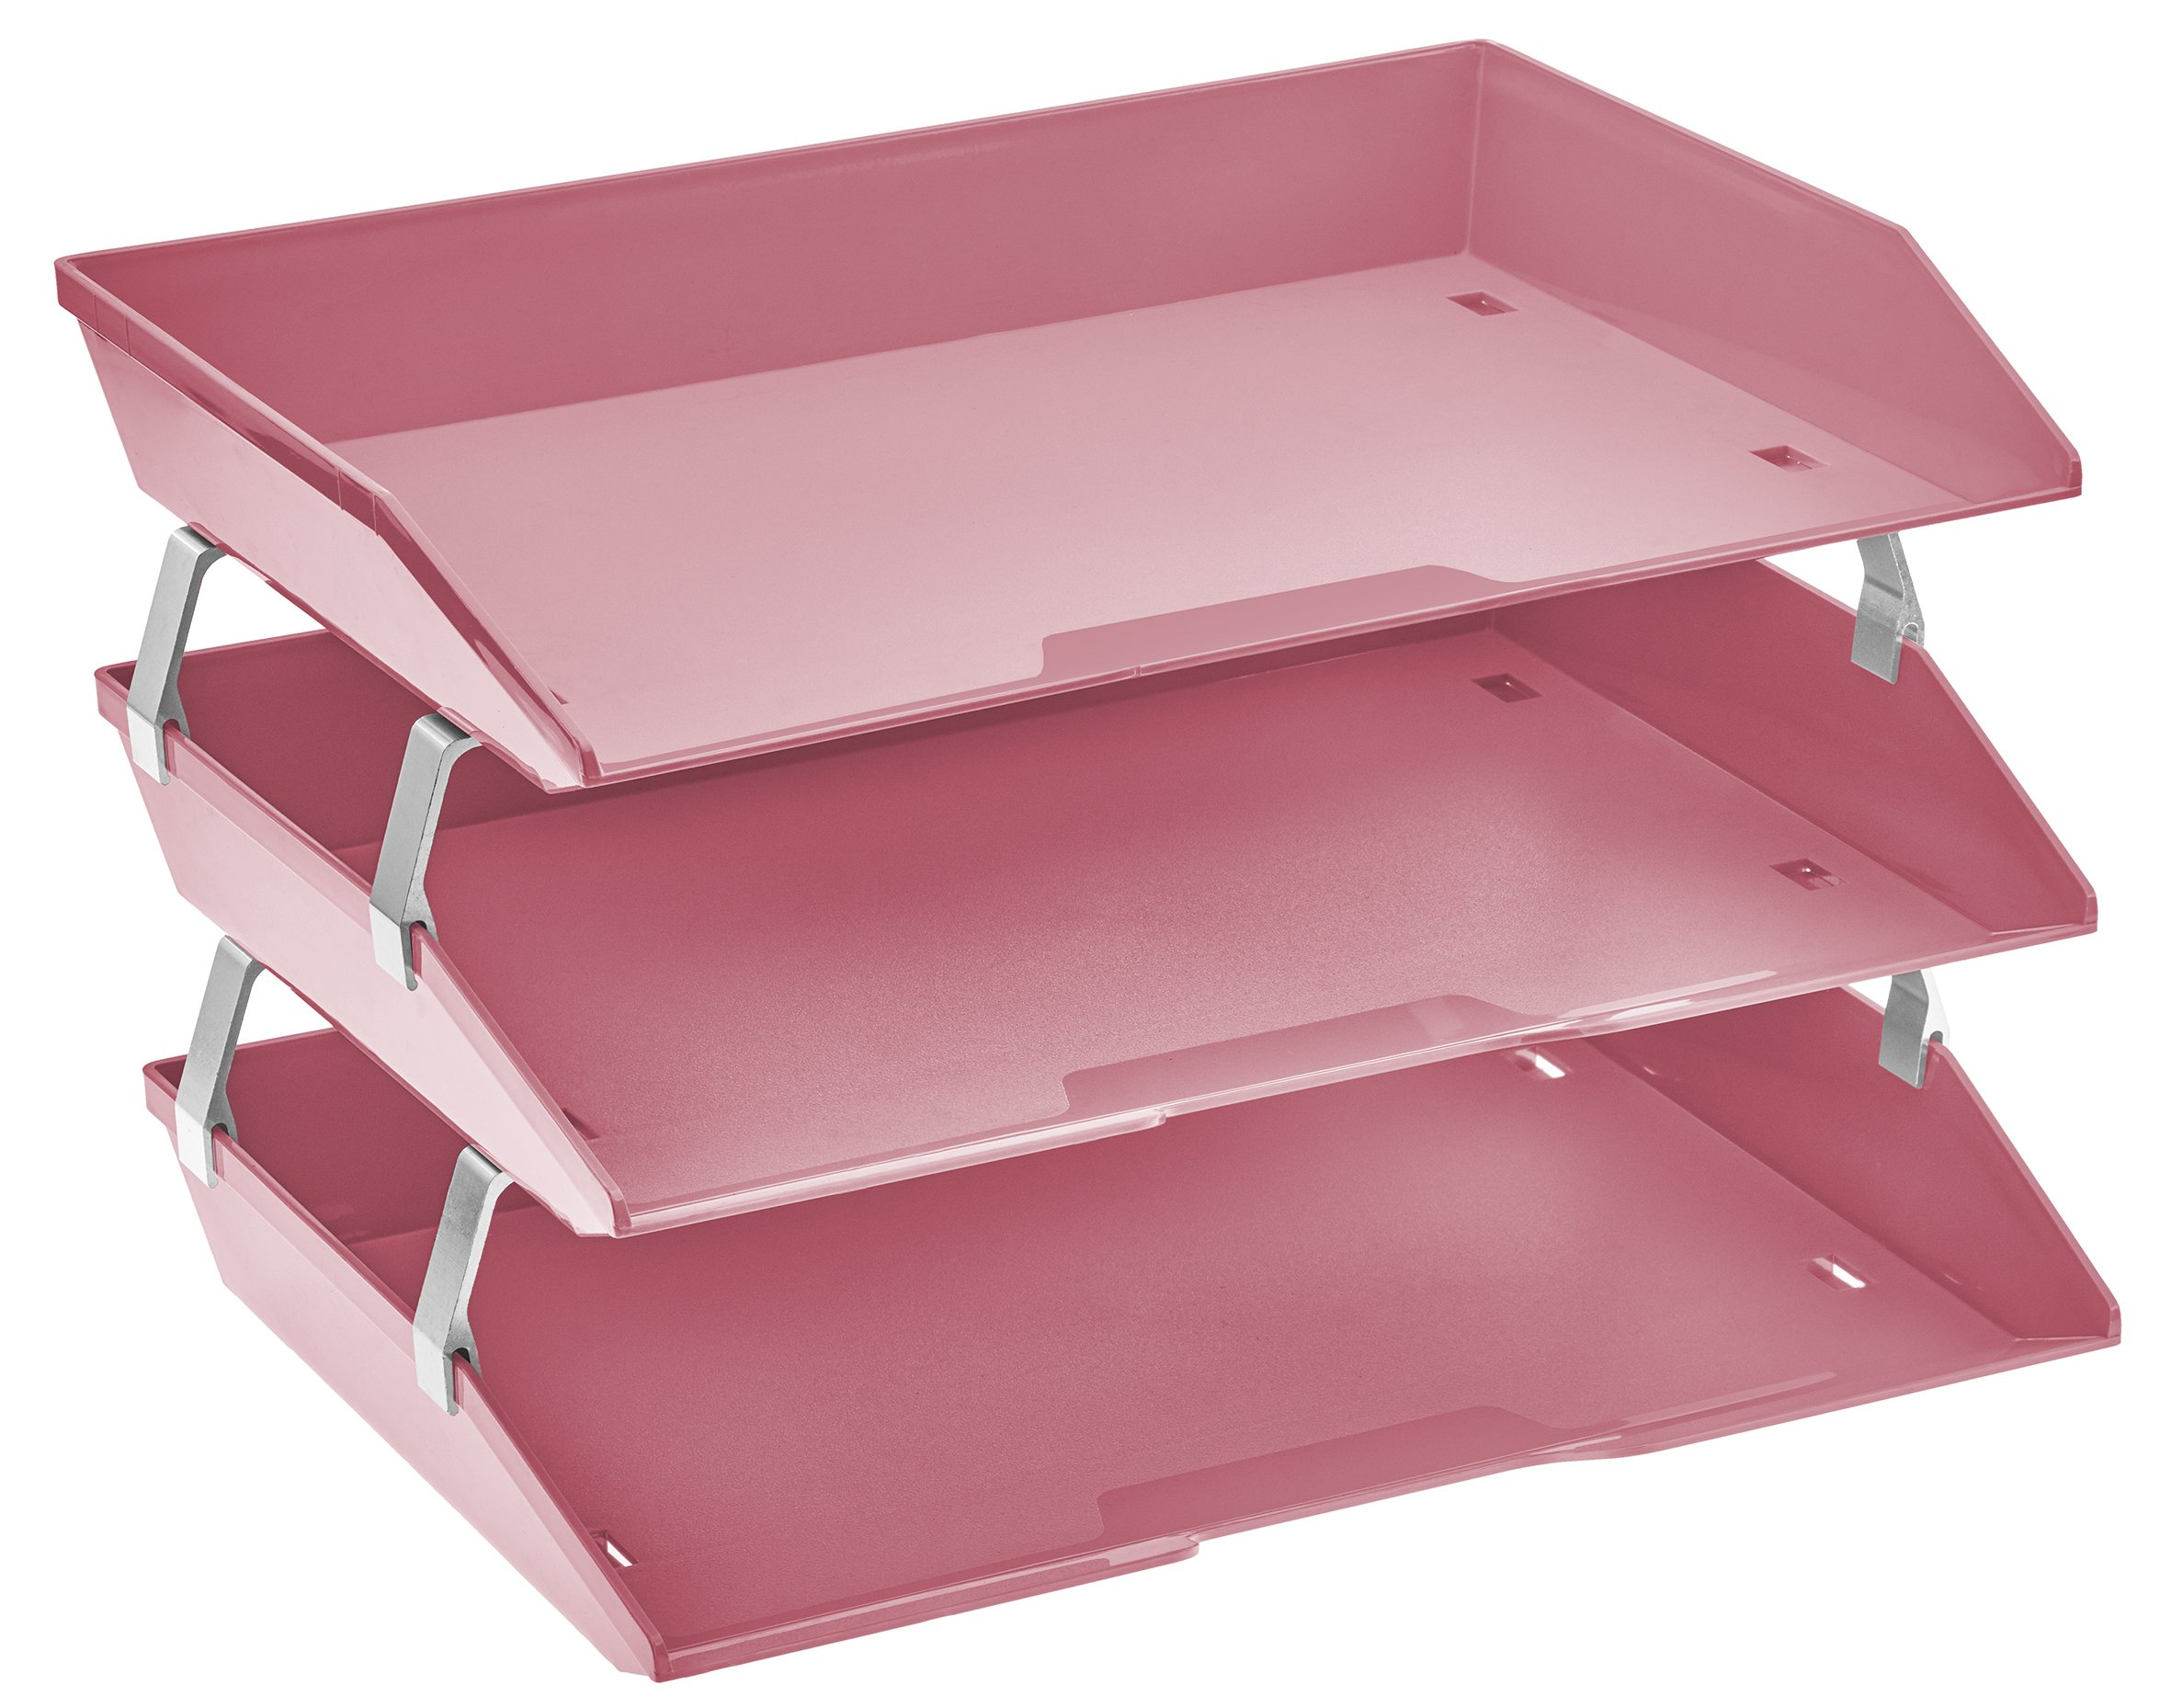 Acrimet Facility 3 Tiers Triple Letter Tray (Solid Pink Color)